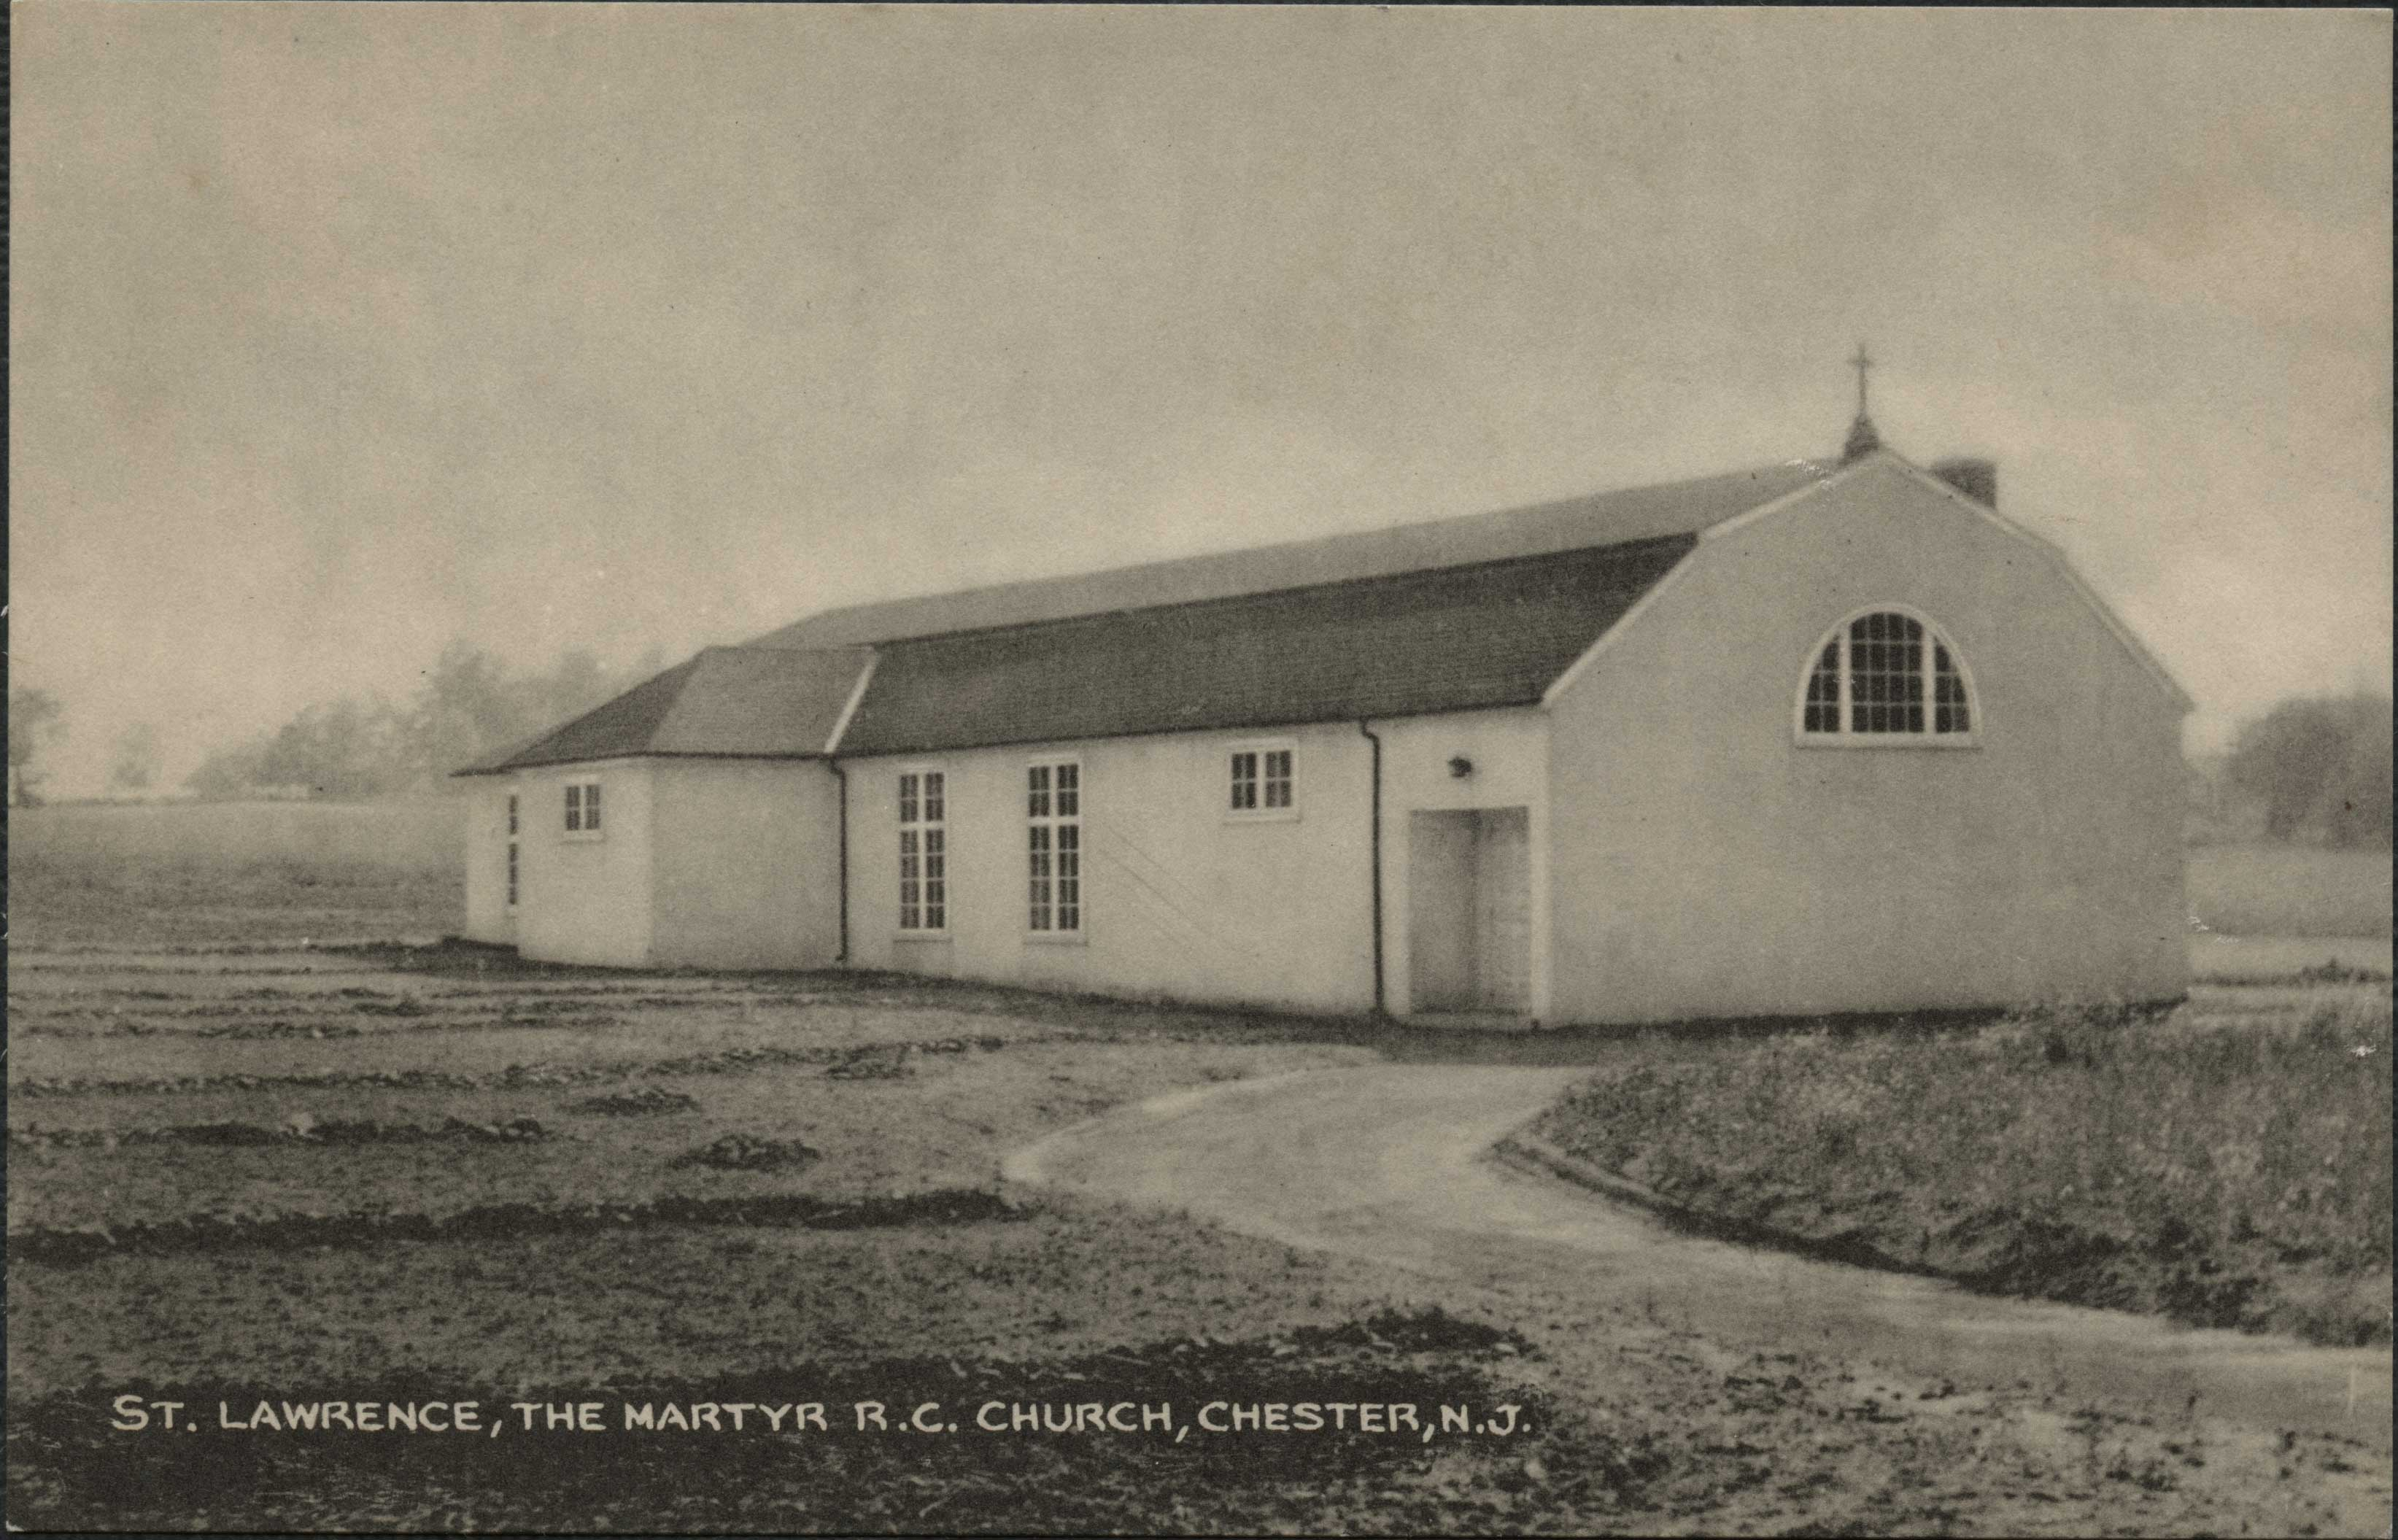 St. Lawrence the Martyr R.C. Church